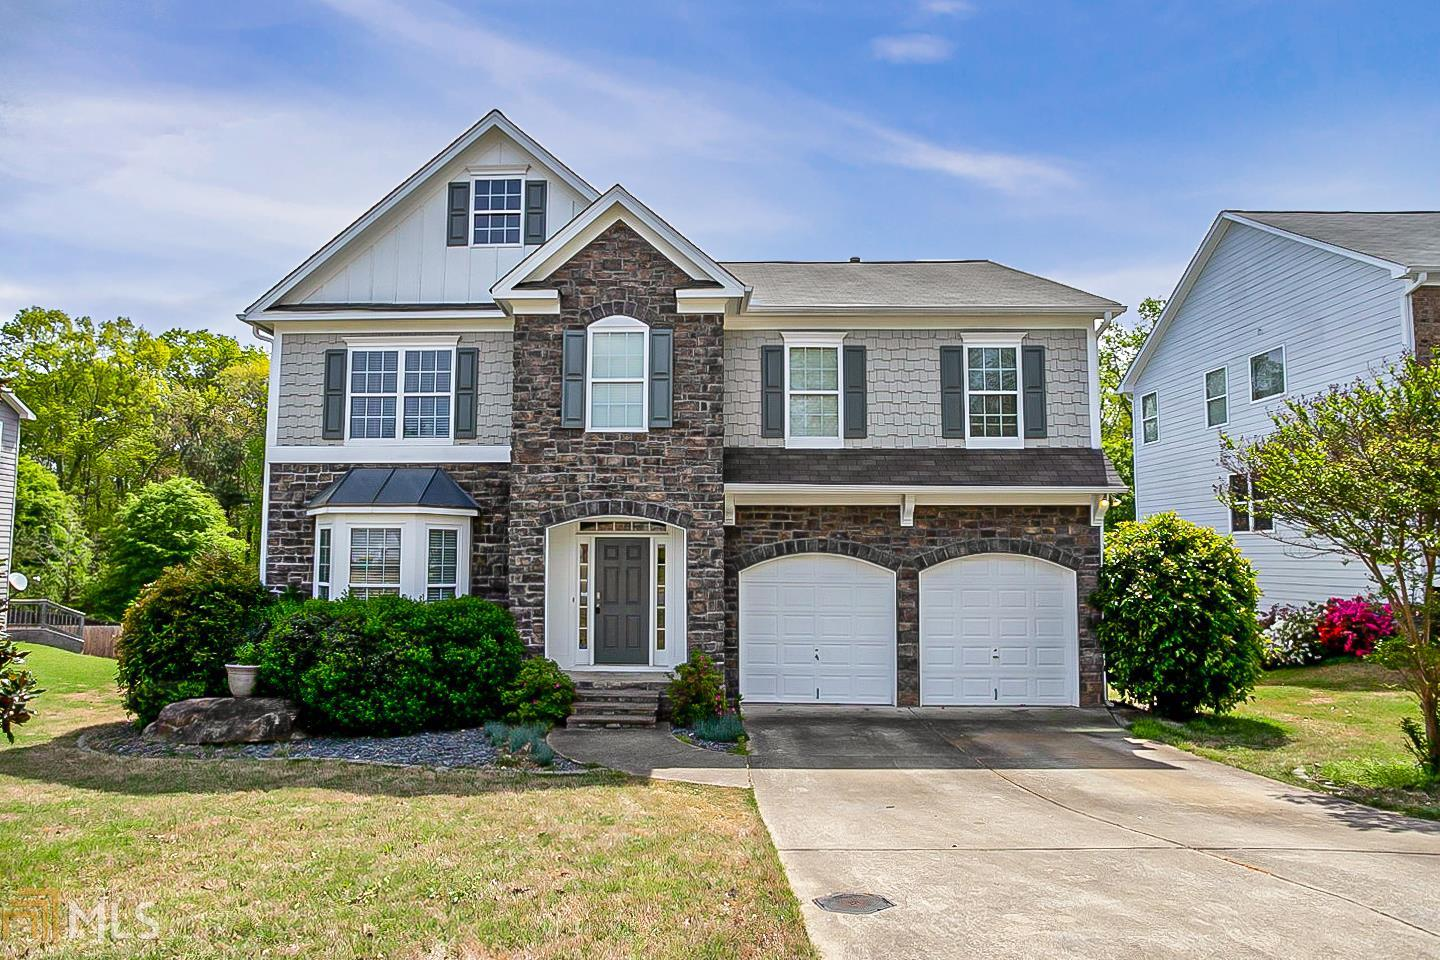 Image for property 151 Mill Crk, Canton, GA 30115